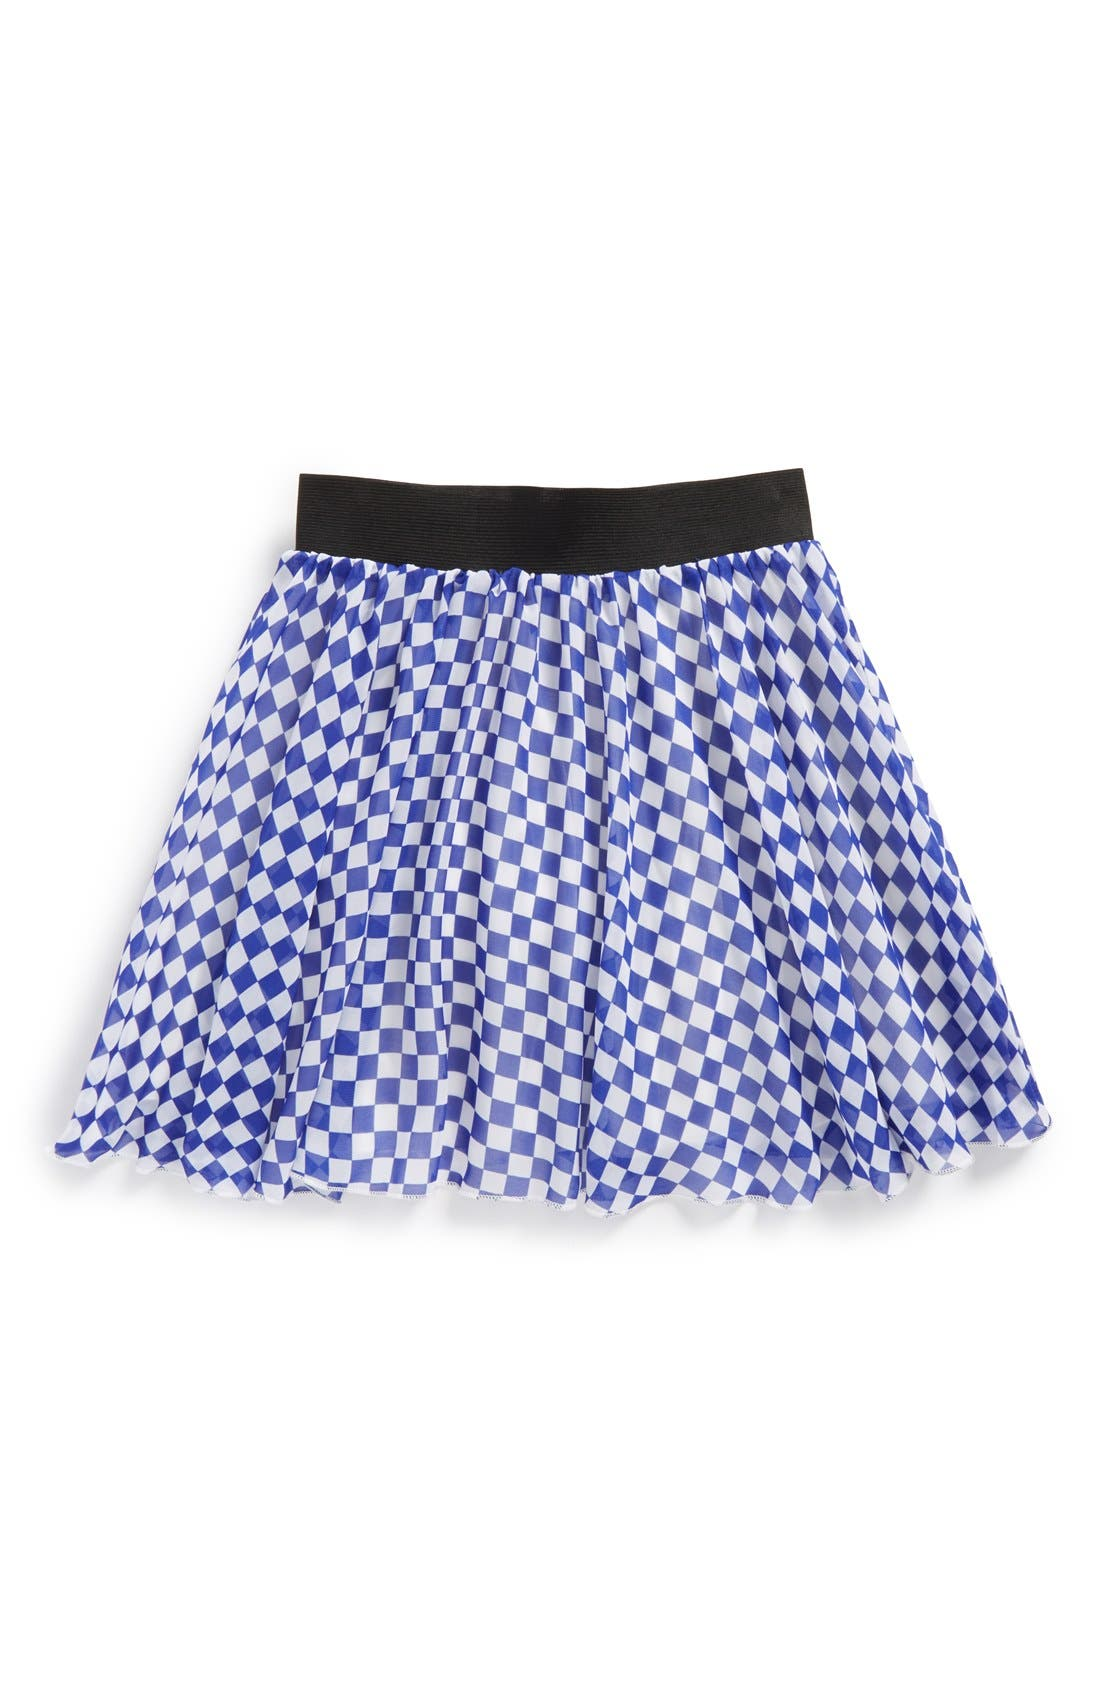 Alternate Image 1 Selected - Un Deux Trois Chiffon Skater Skirt (Big Girls)(Online Only)